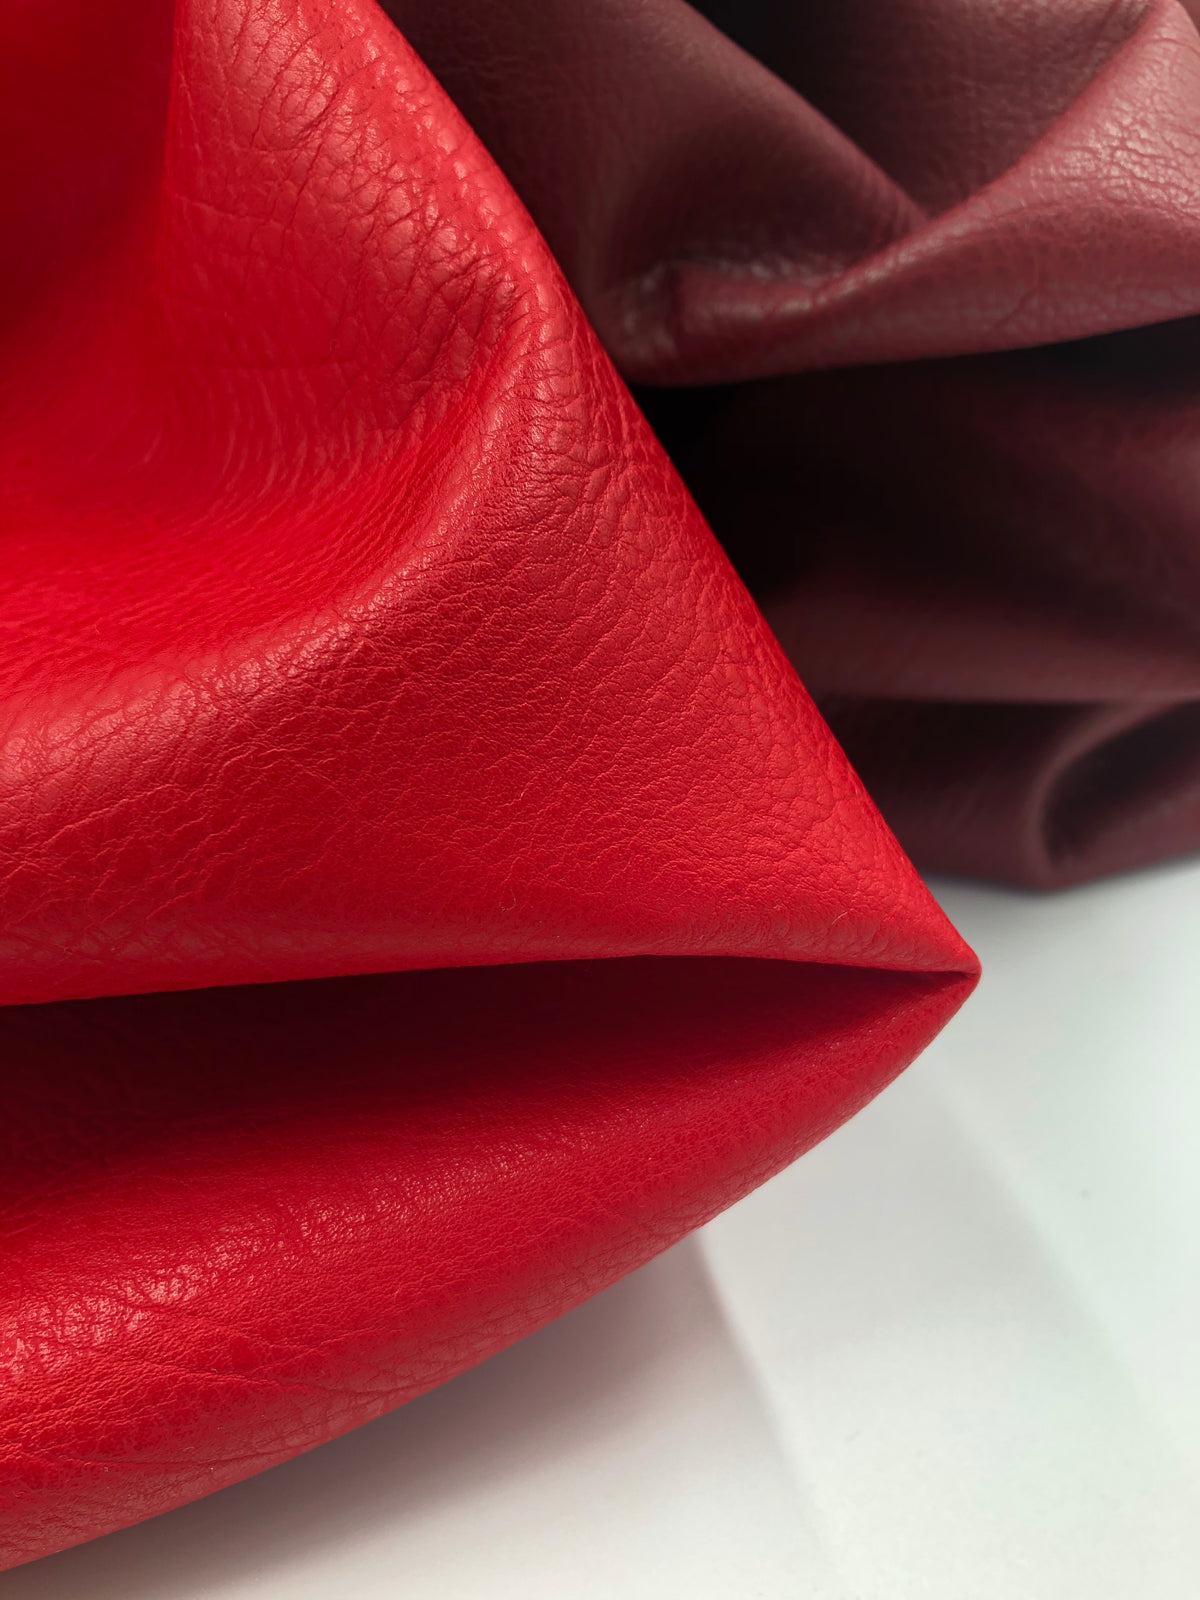 Sewing with Vegan Leather